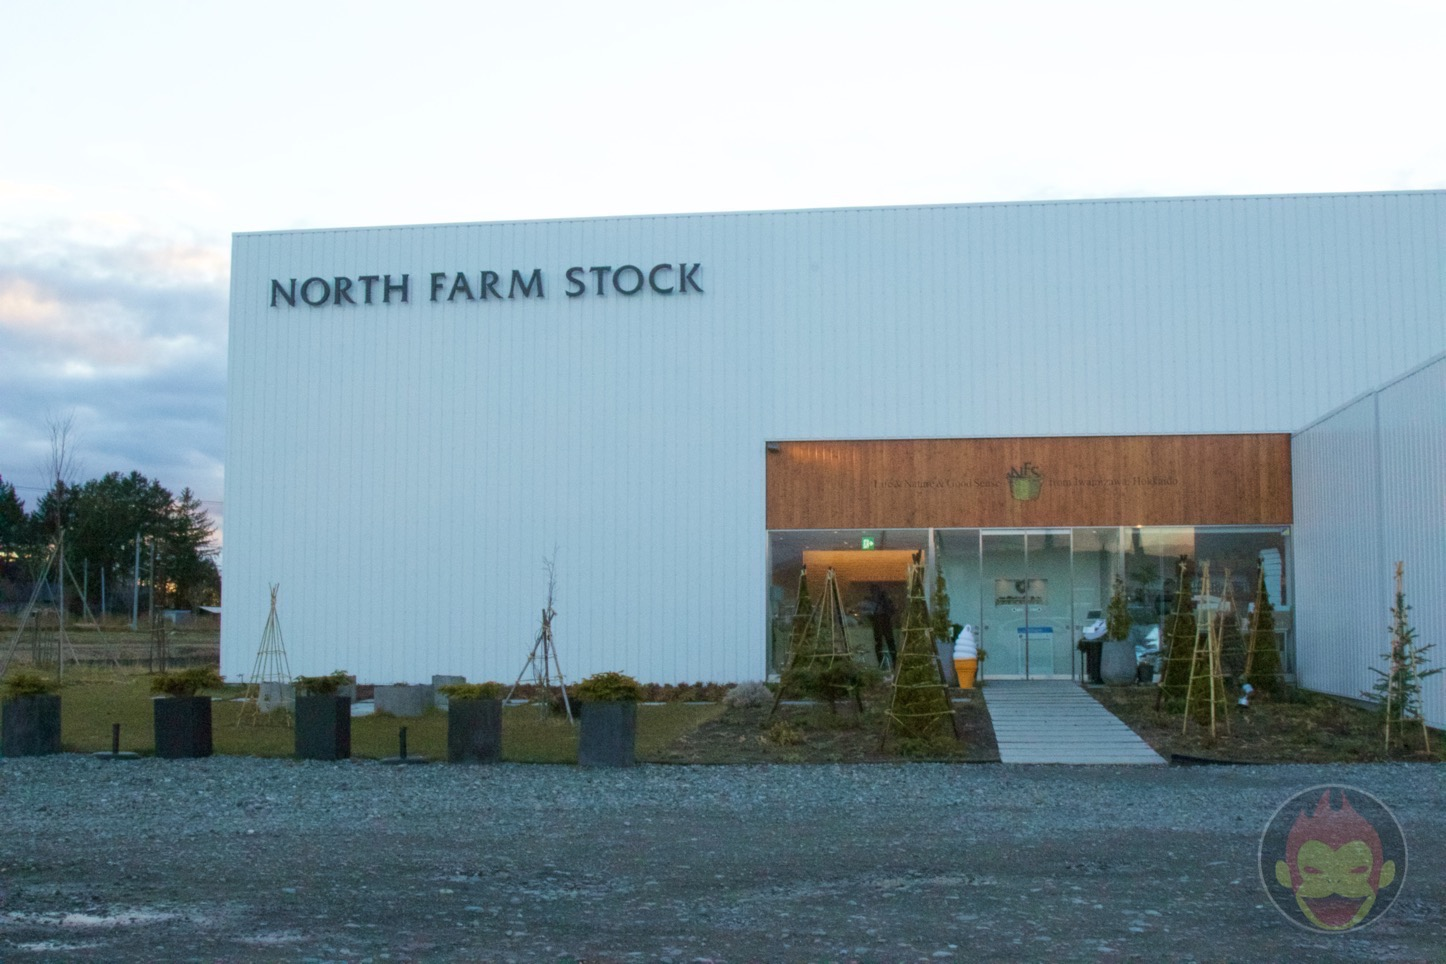 North Farm Stock